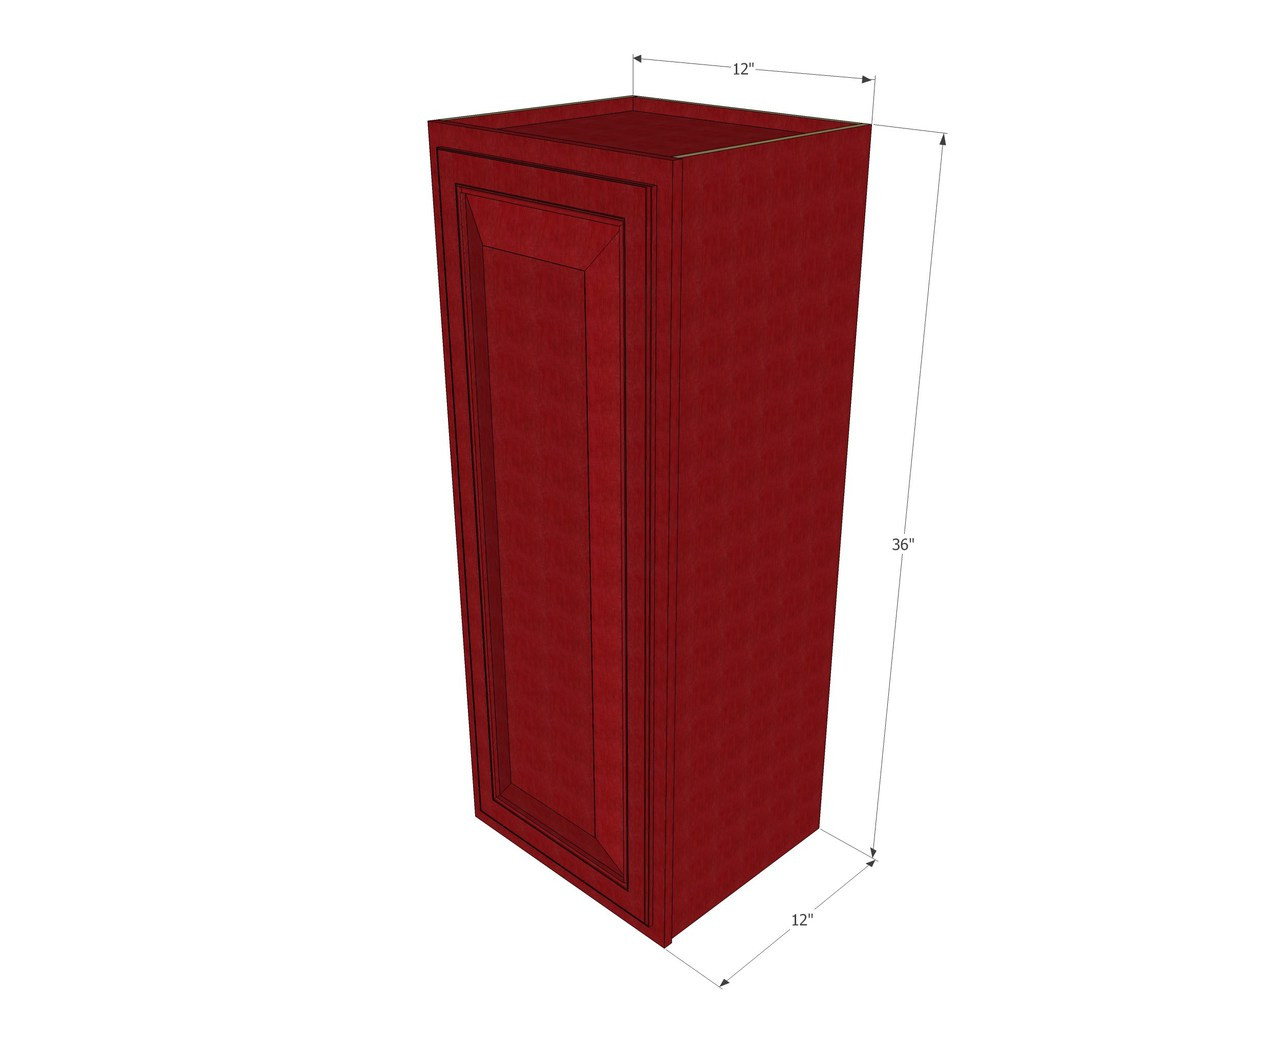 Small single door grand reserve cherry wall cabinet 12 for Kitchen cabinets 36 high